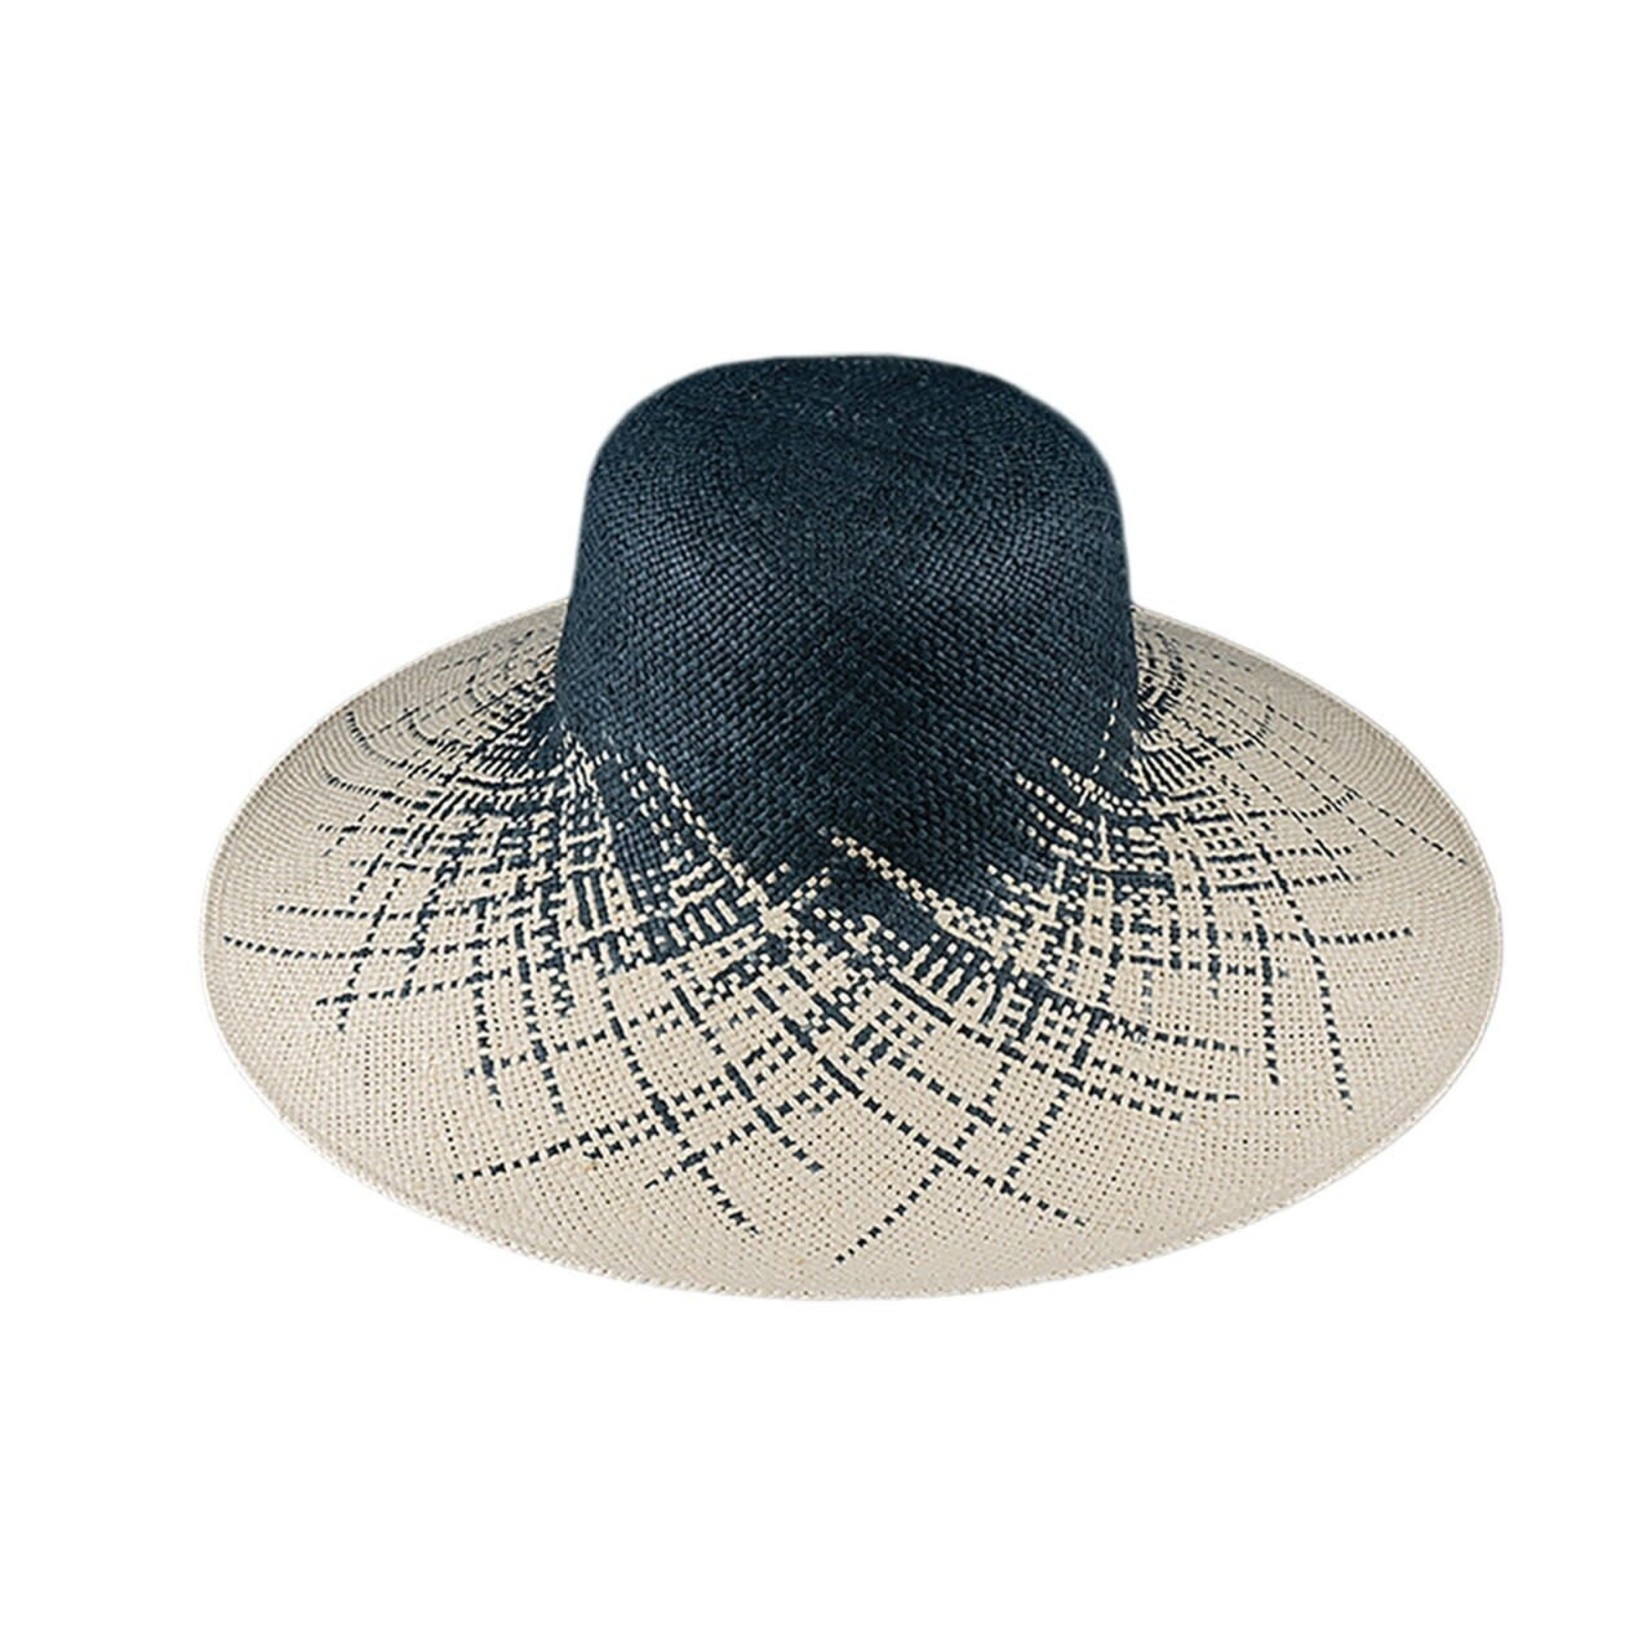 Jeanne Simmons Dark Grey and Creme Woven Paper Wide Brim Hat